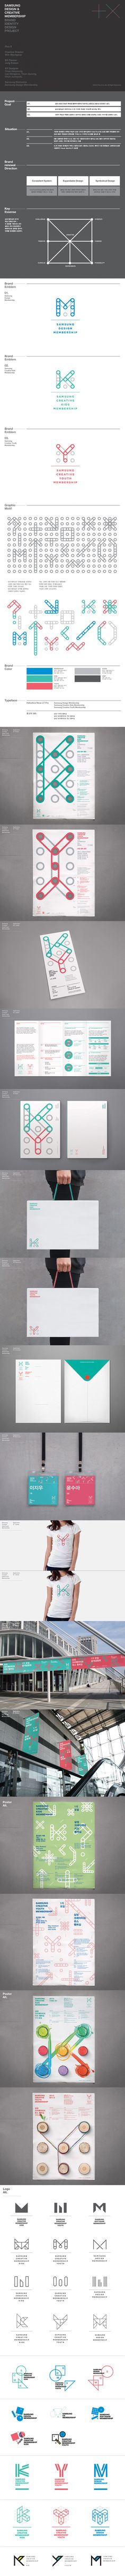 Studio Playground likes this identity: Samsung Design & Creative Membership BX Design Project by Plus X , via Behance